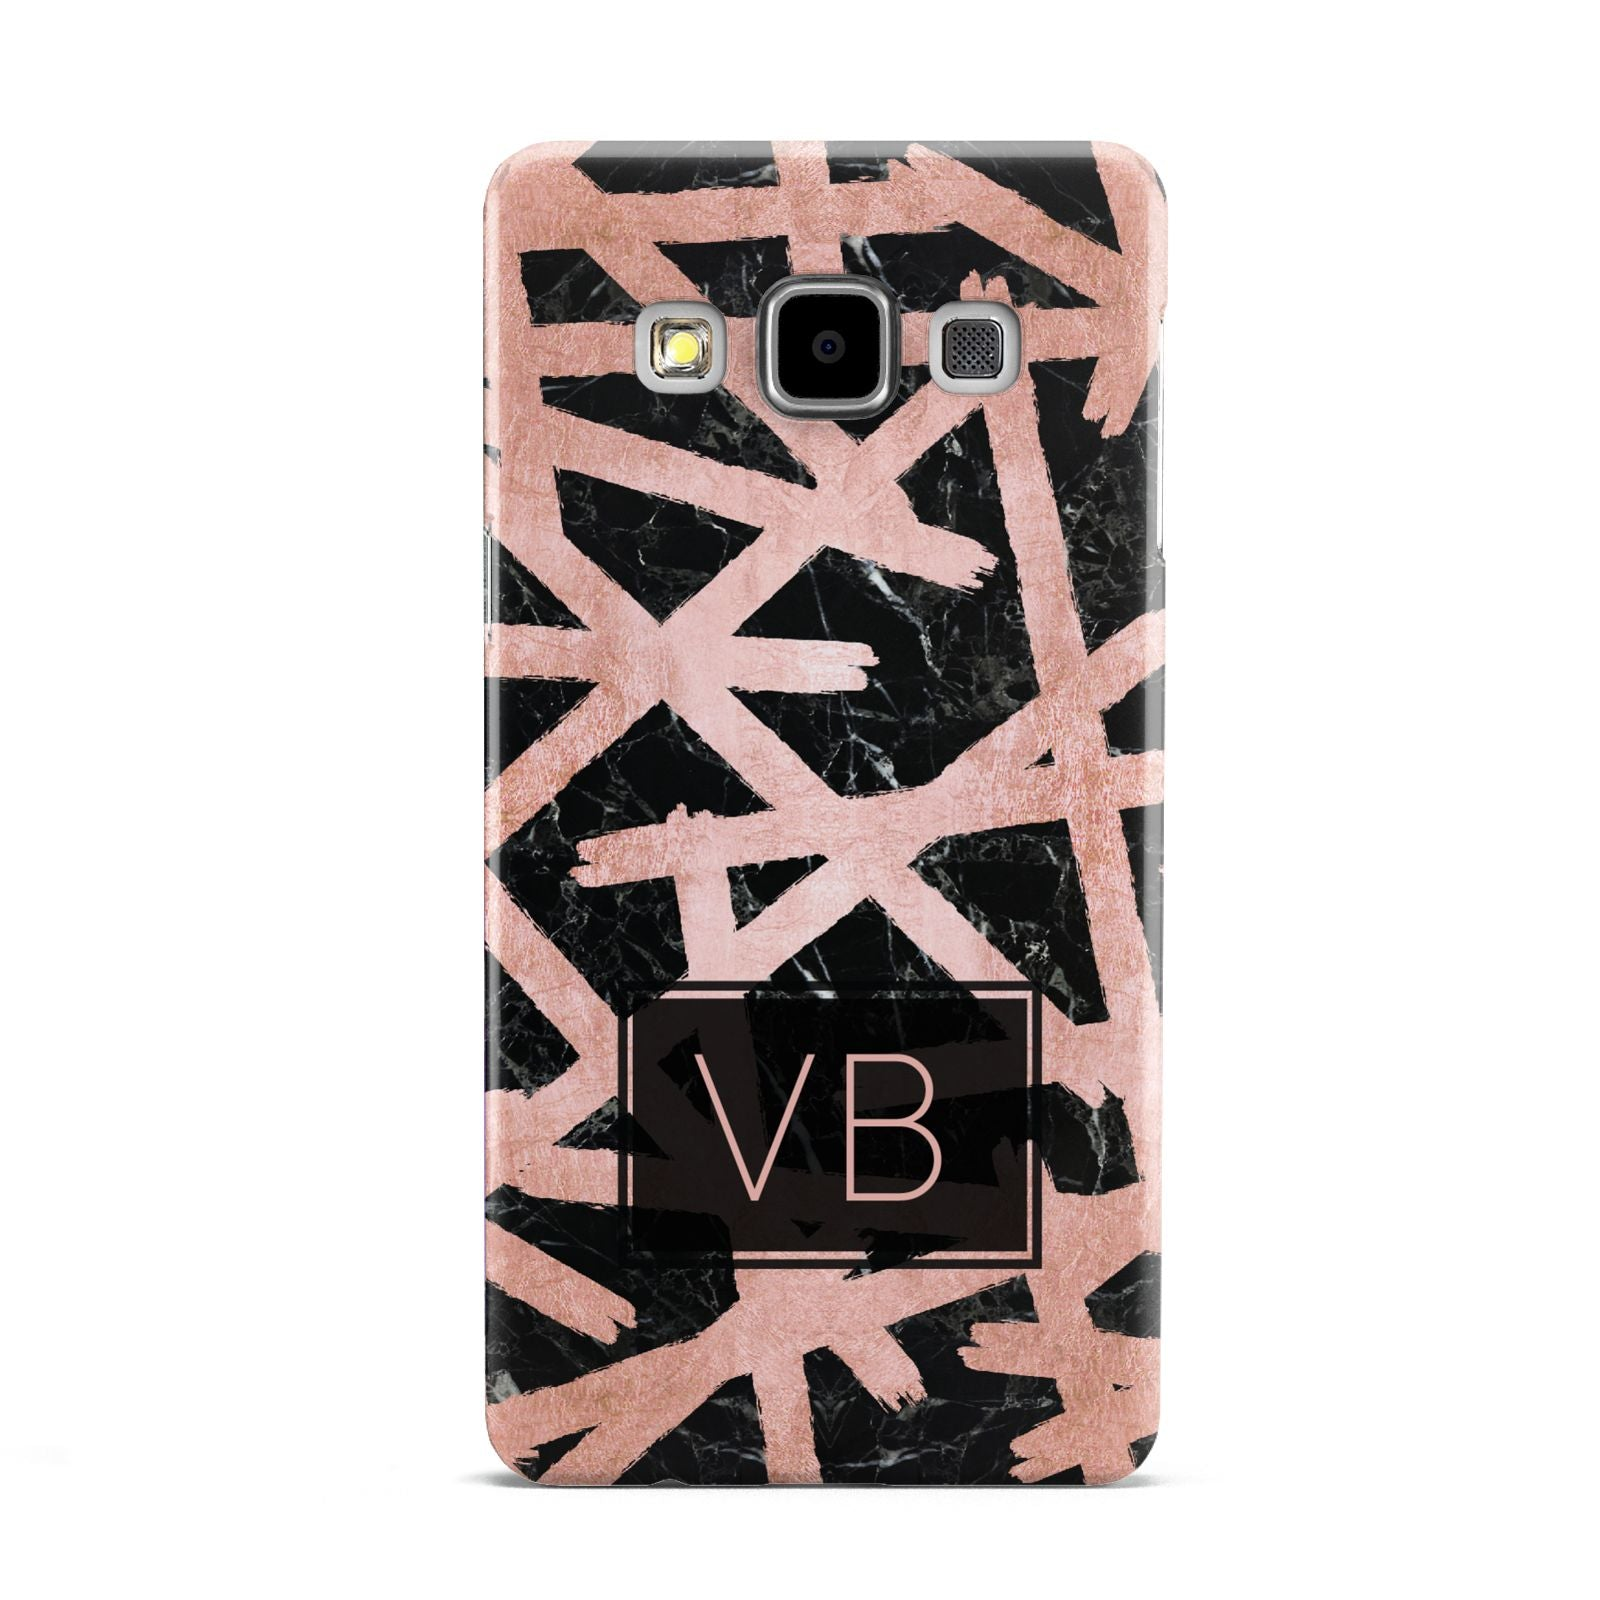 Personalised Rose Gold Effect Samsung Galaxy A5 Case